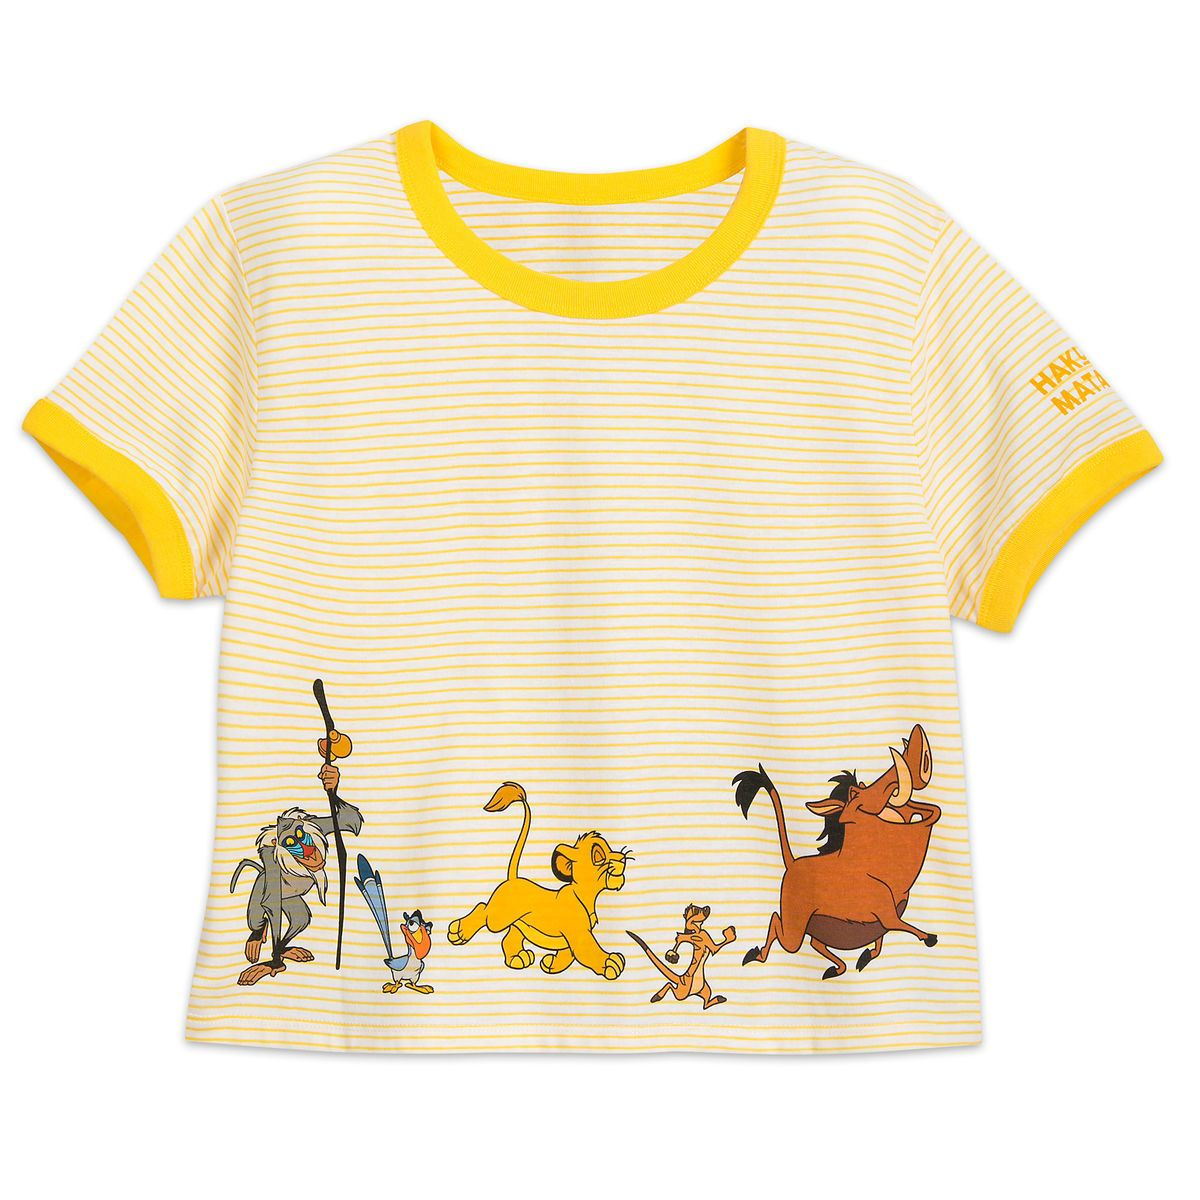 The Lion King T Shirt For Women Oh My Disney Cute Disney Outfits Disney World Outfits Disney Themed Outfits [ 1200 x 1200 Pixel ]